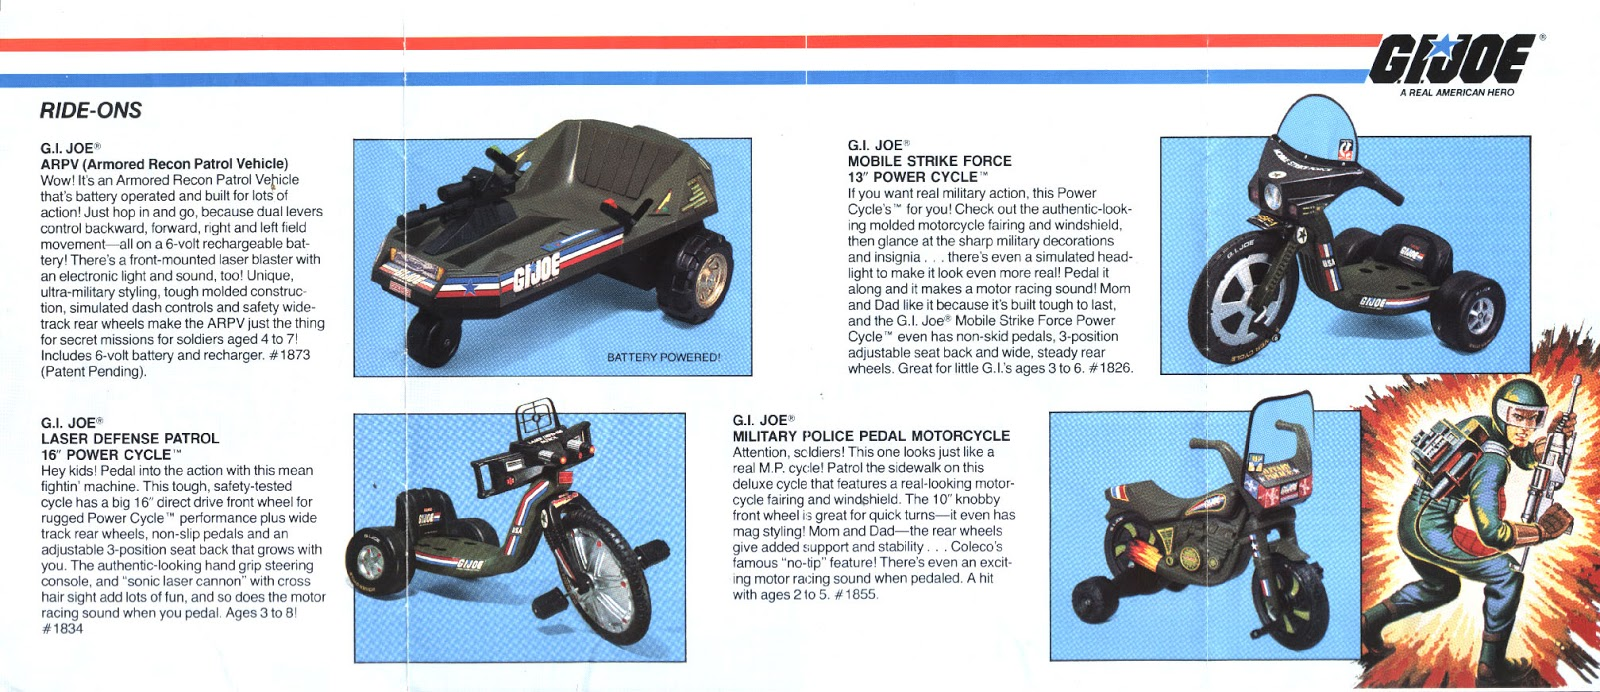 10 Best Themed Coleco Power Cycles Of The '80s - Rediscover the '80s